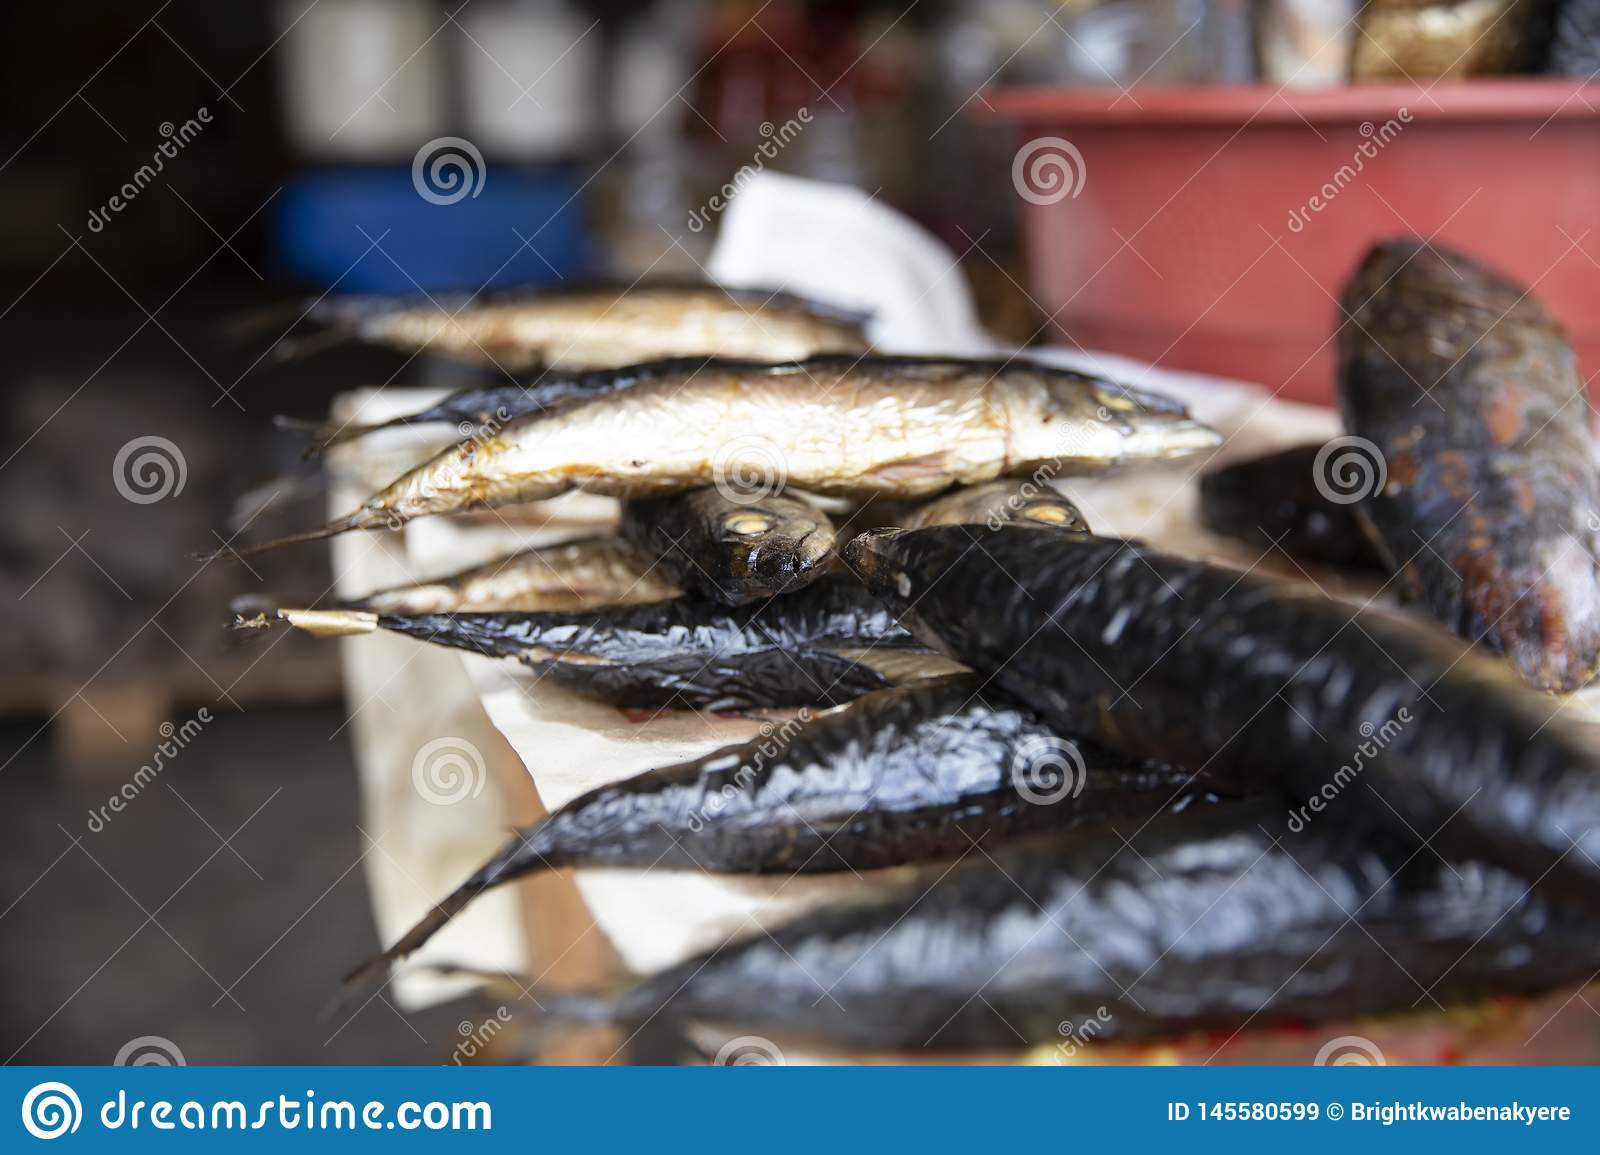 Smoked Fish from Ghana Market